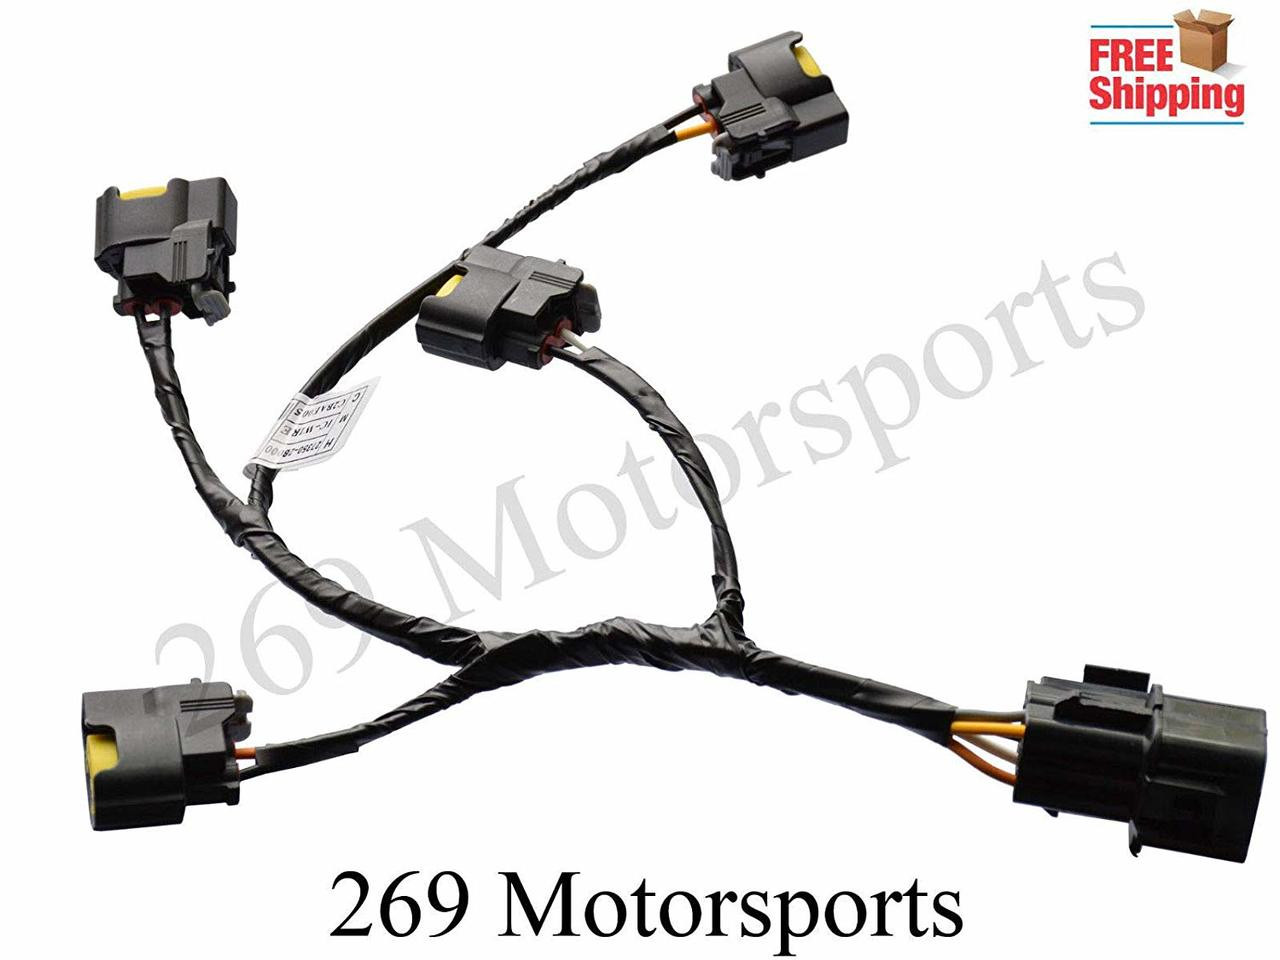 medium resolution of ignition coil wire harness for 10 14 veloster rio soul 1 6l replaces 27350 2b000